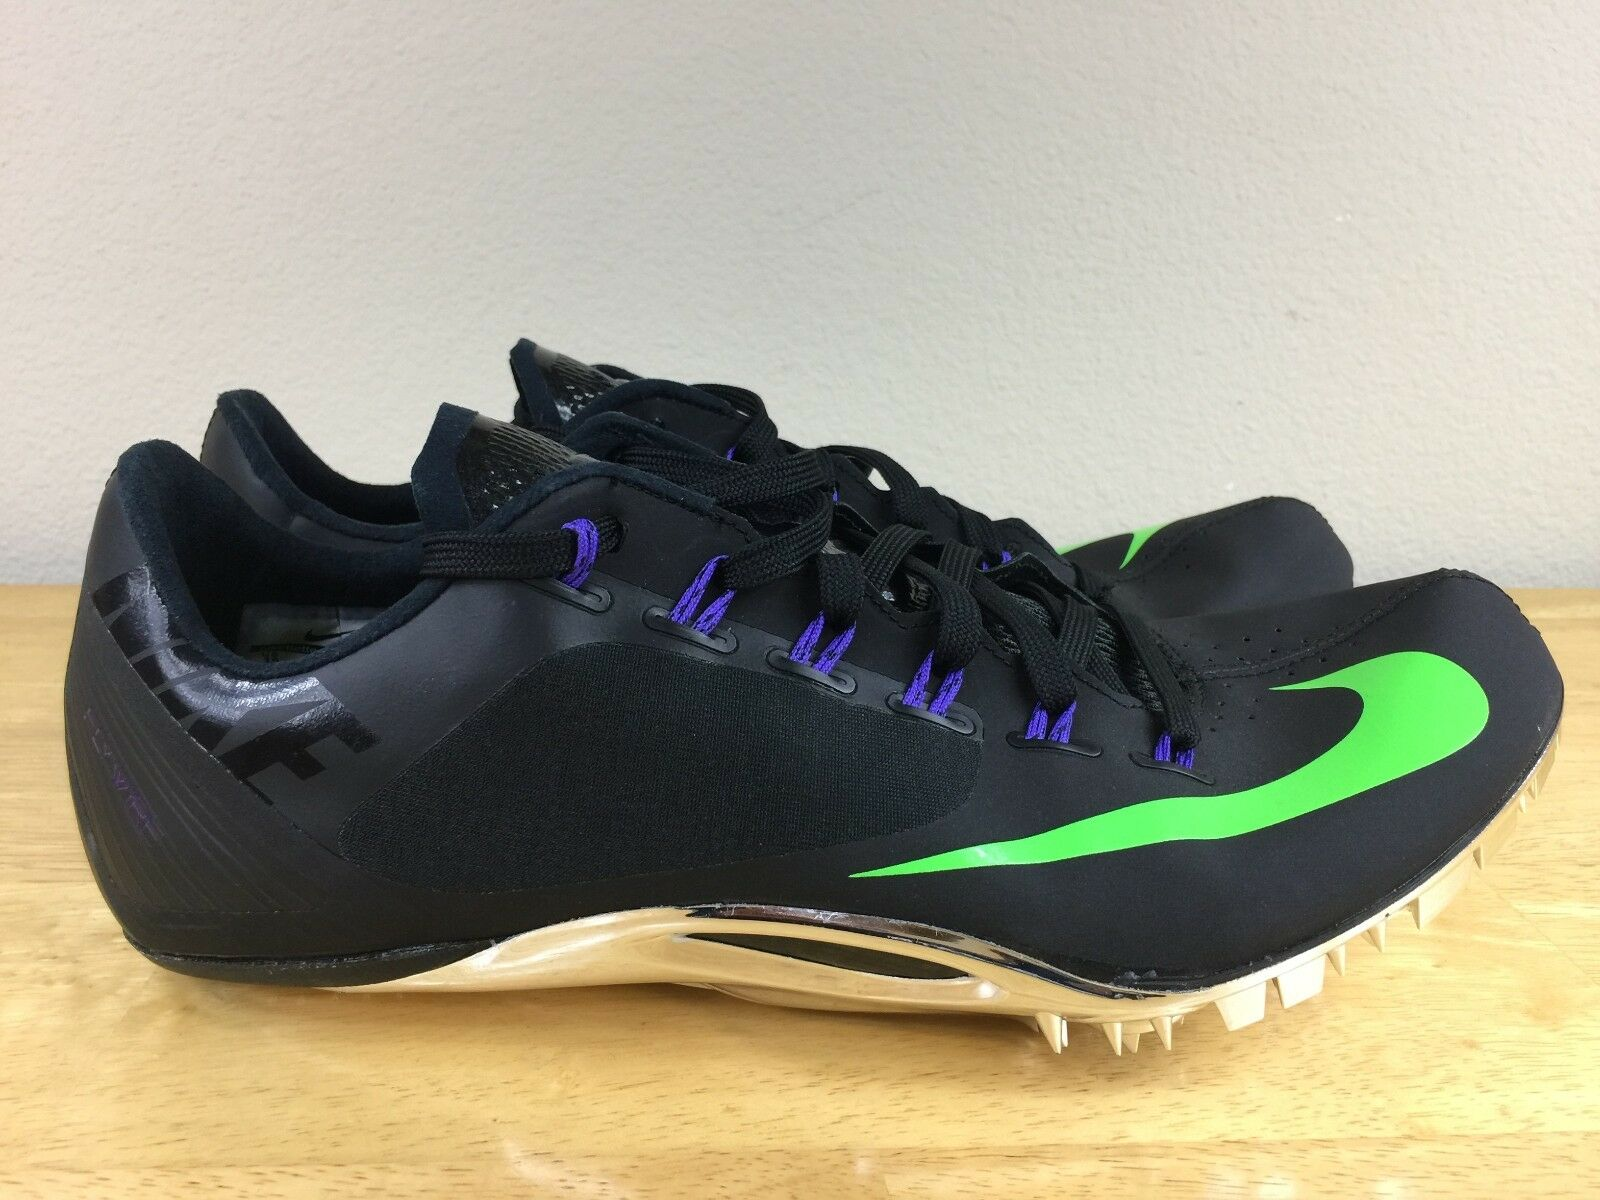 Nike Zoom SuperFly R4 Track & Field Spikes Running Shoes 526626-035 Sz 12 Men's